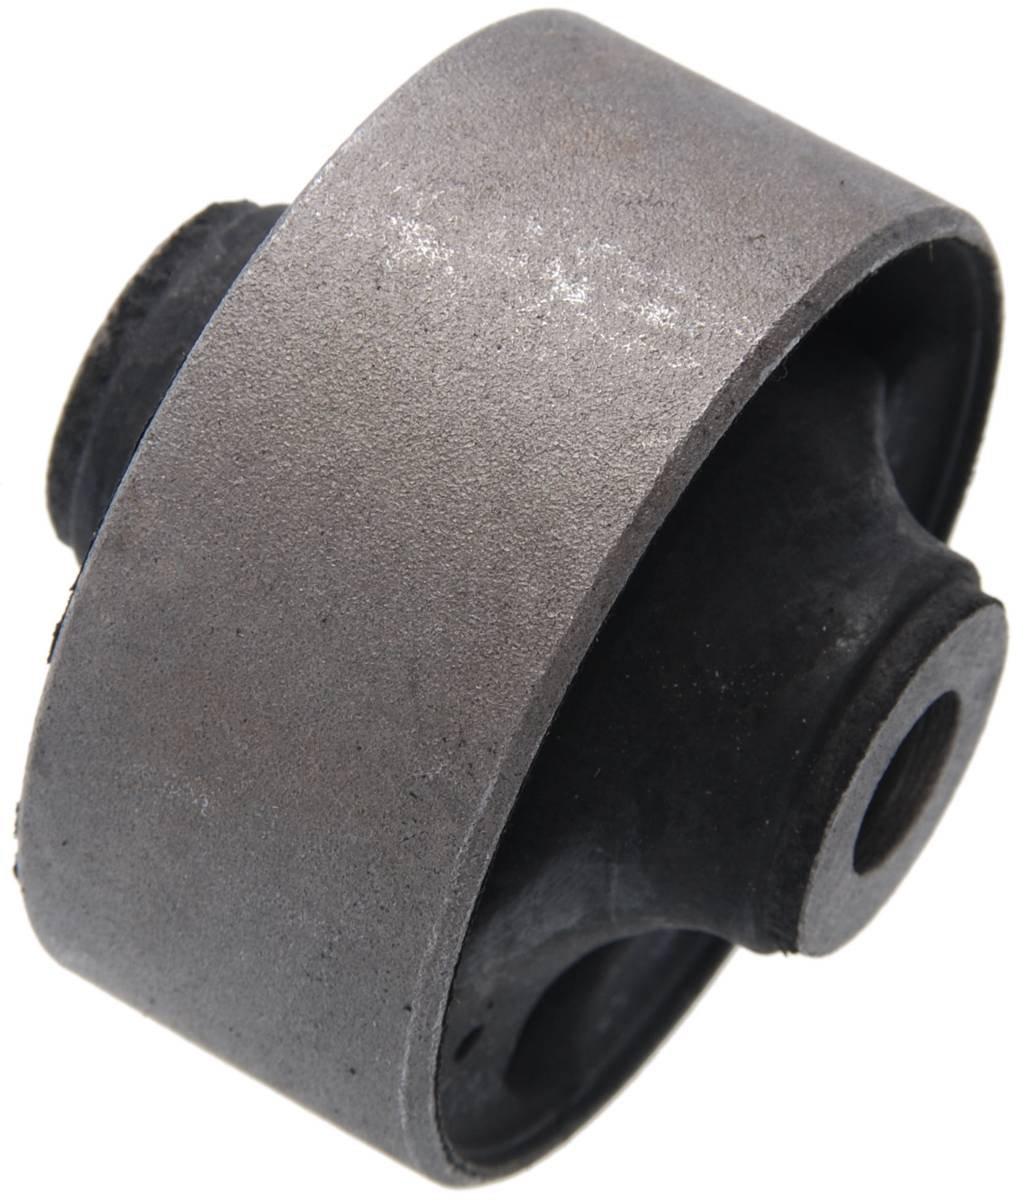 5238045030 - Arm Bushing (for Differential Mount) For Toyota - Febest